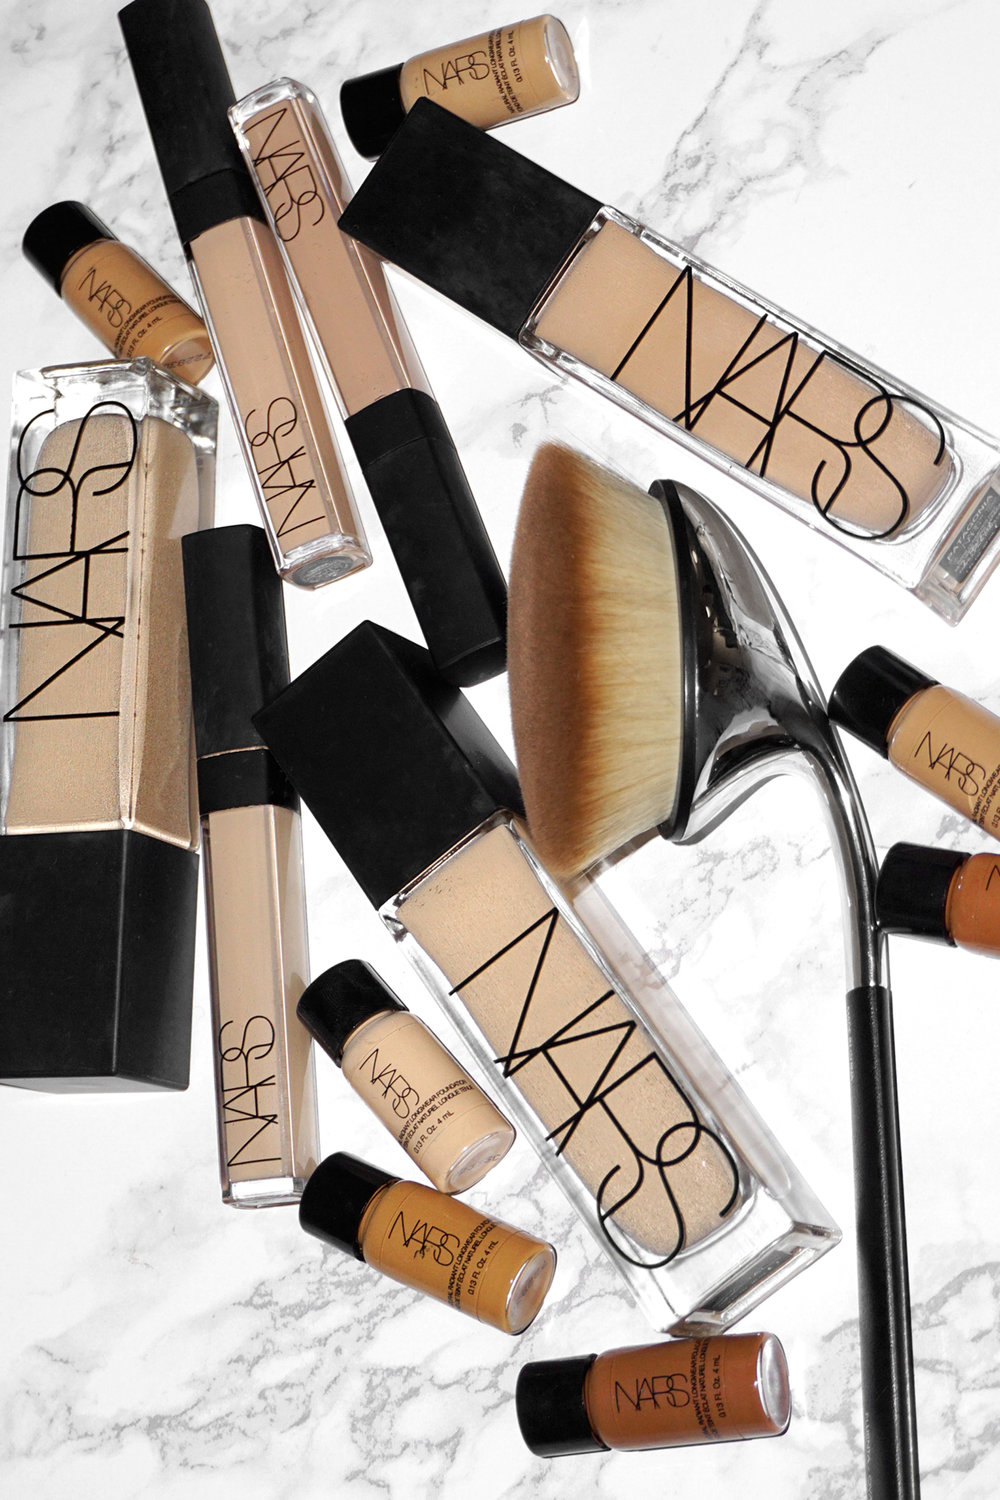 NARS Radiant Longwear Foundation Review and swatches - full collection- woahstyle.com -07326.jpg